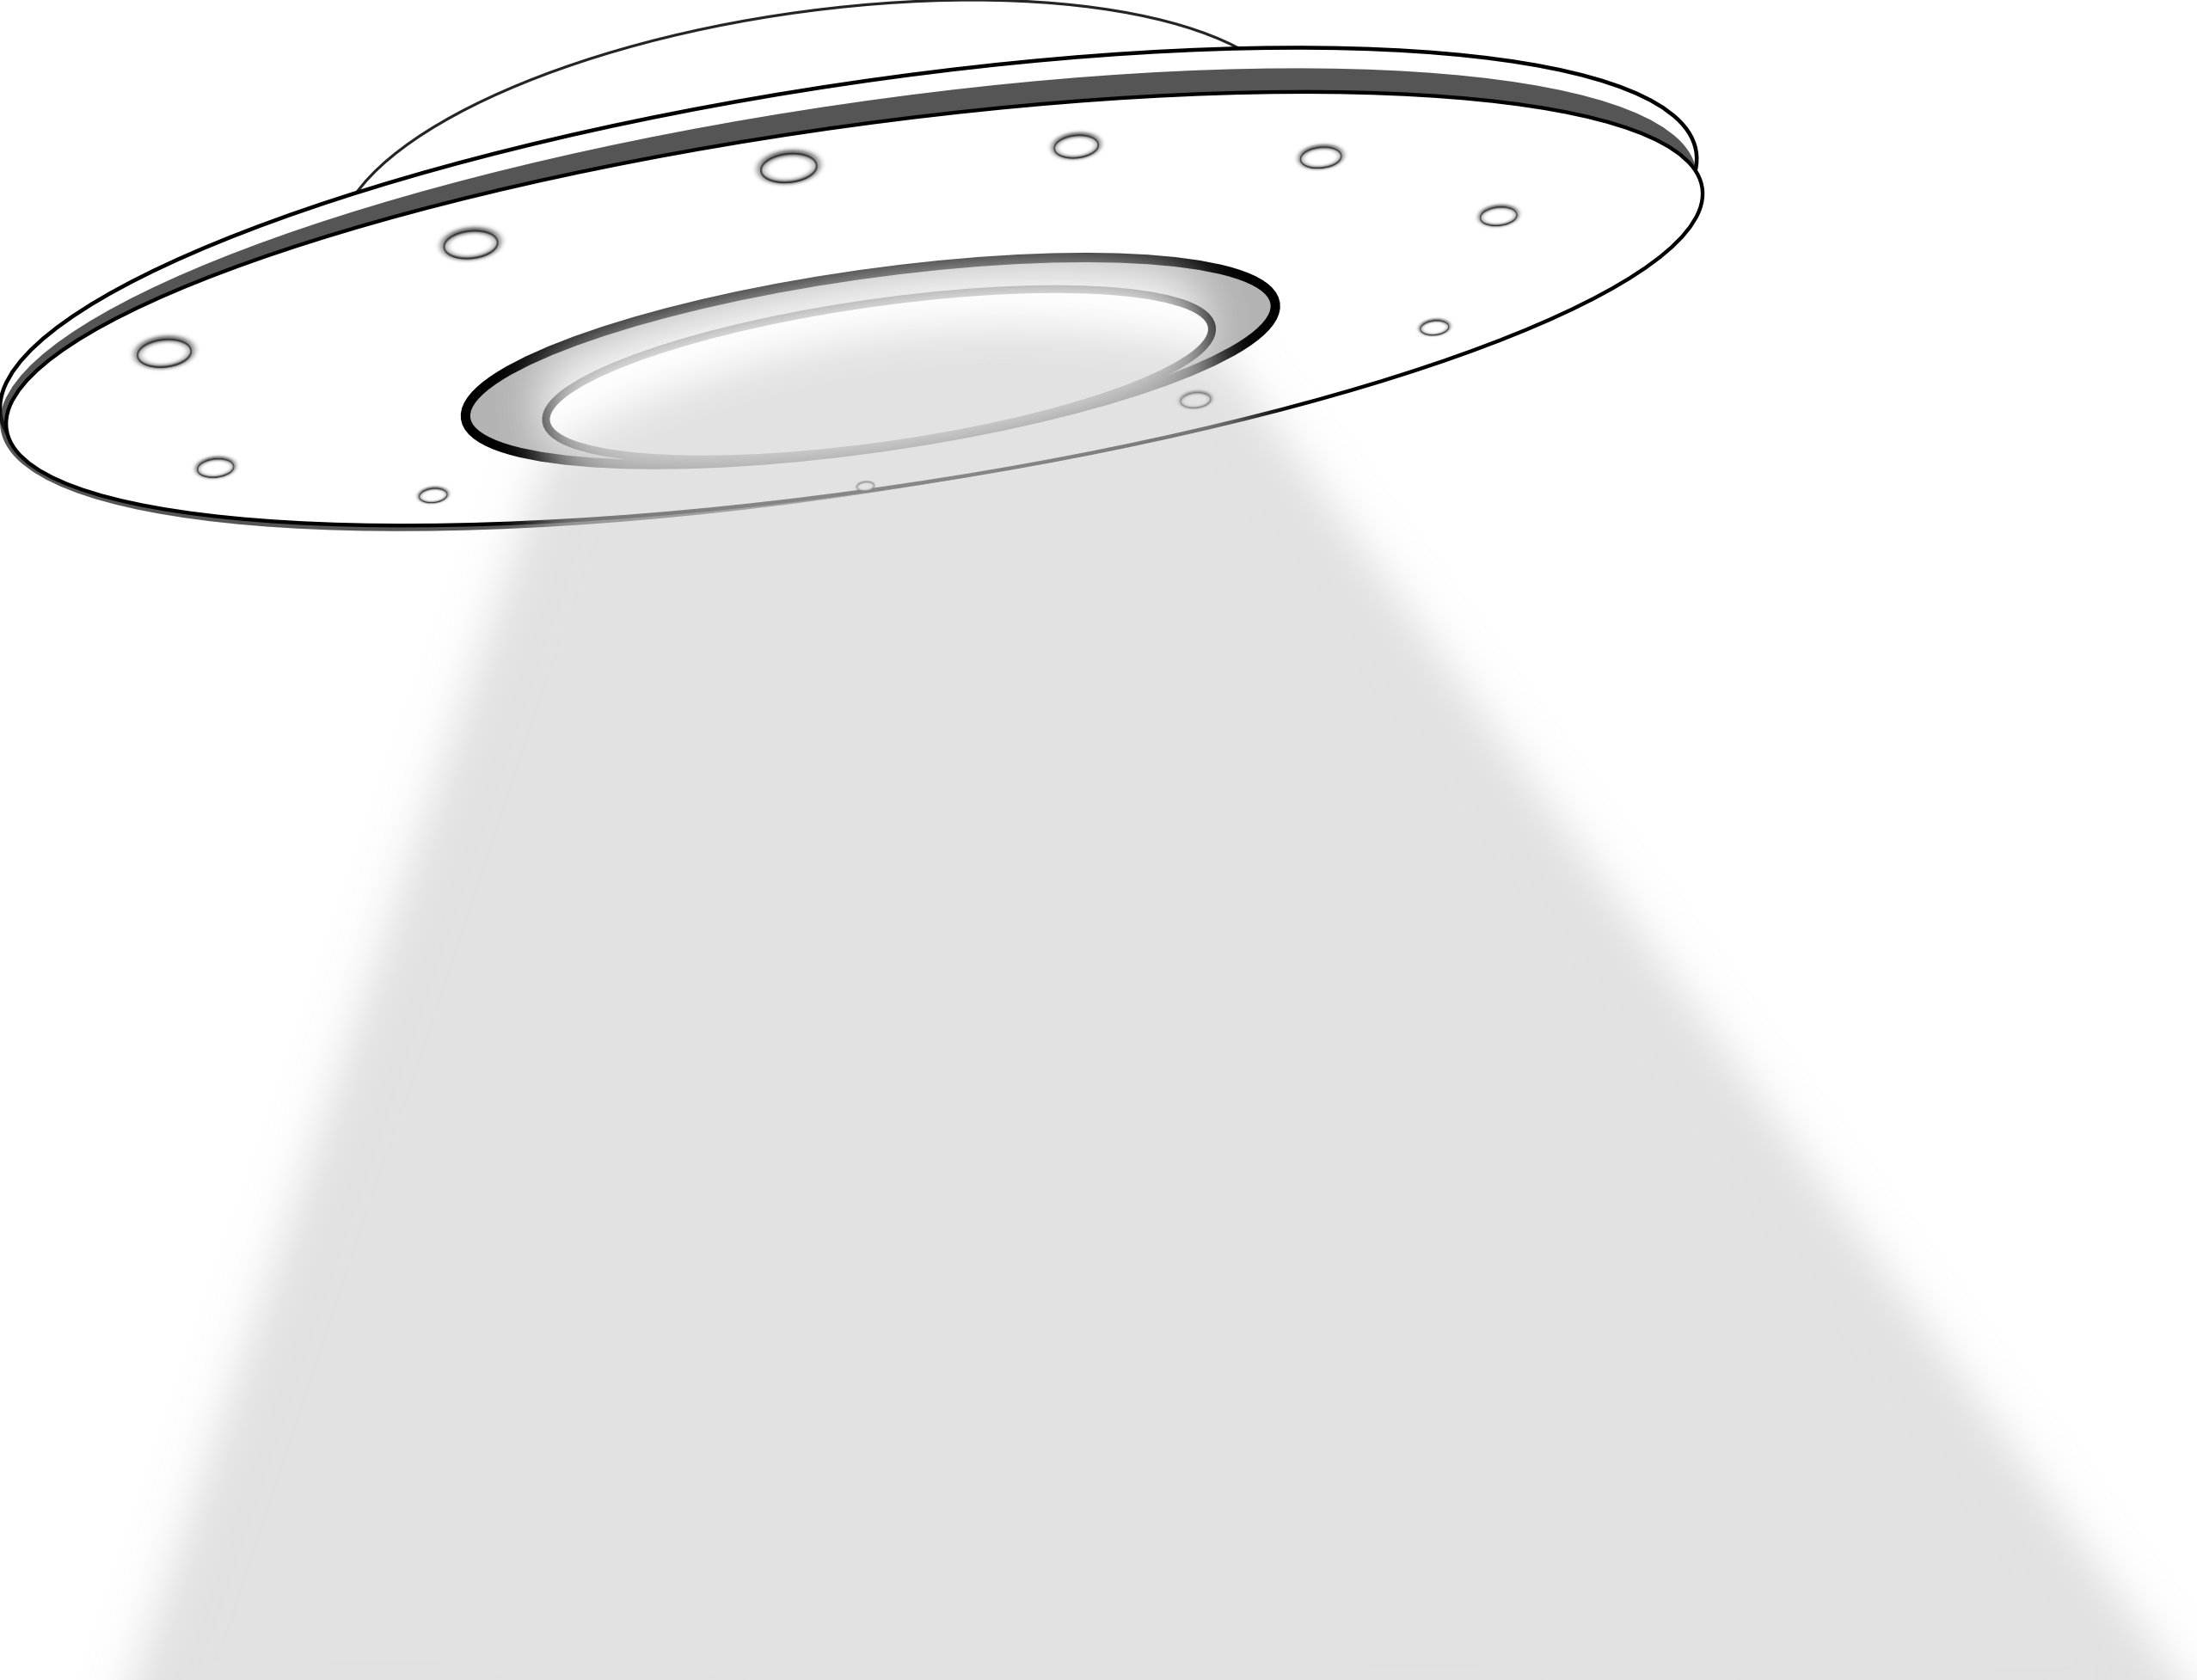 UFO svg #9, Download drawings